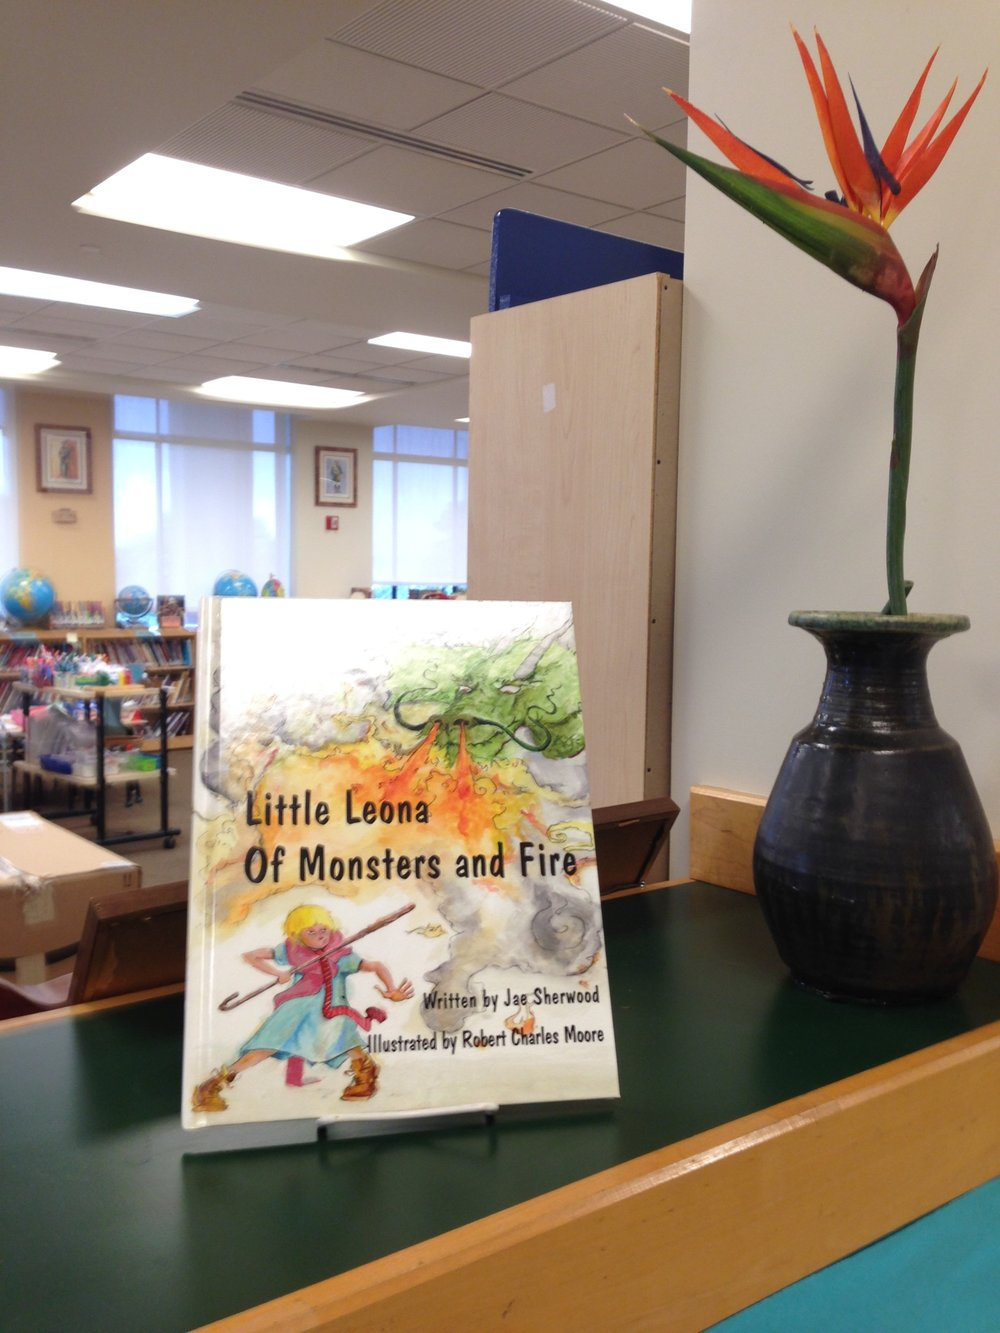 Little Leona displayed in a school library in Hawaii.